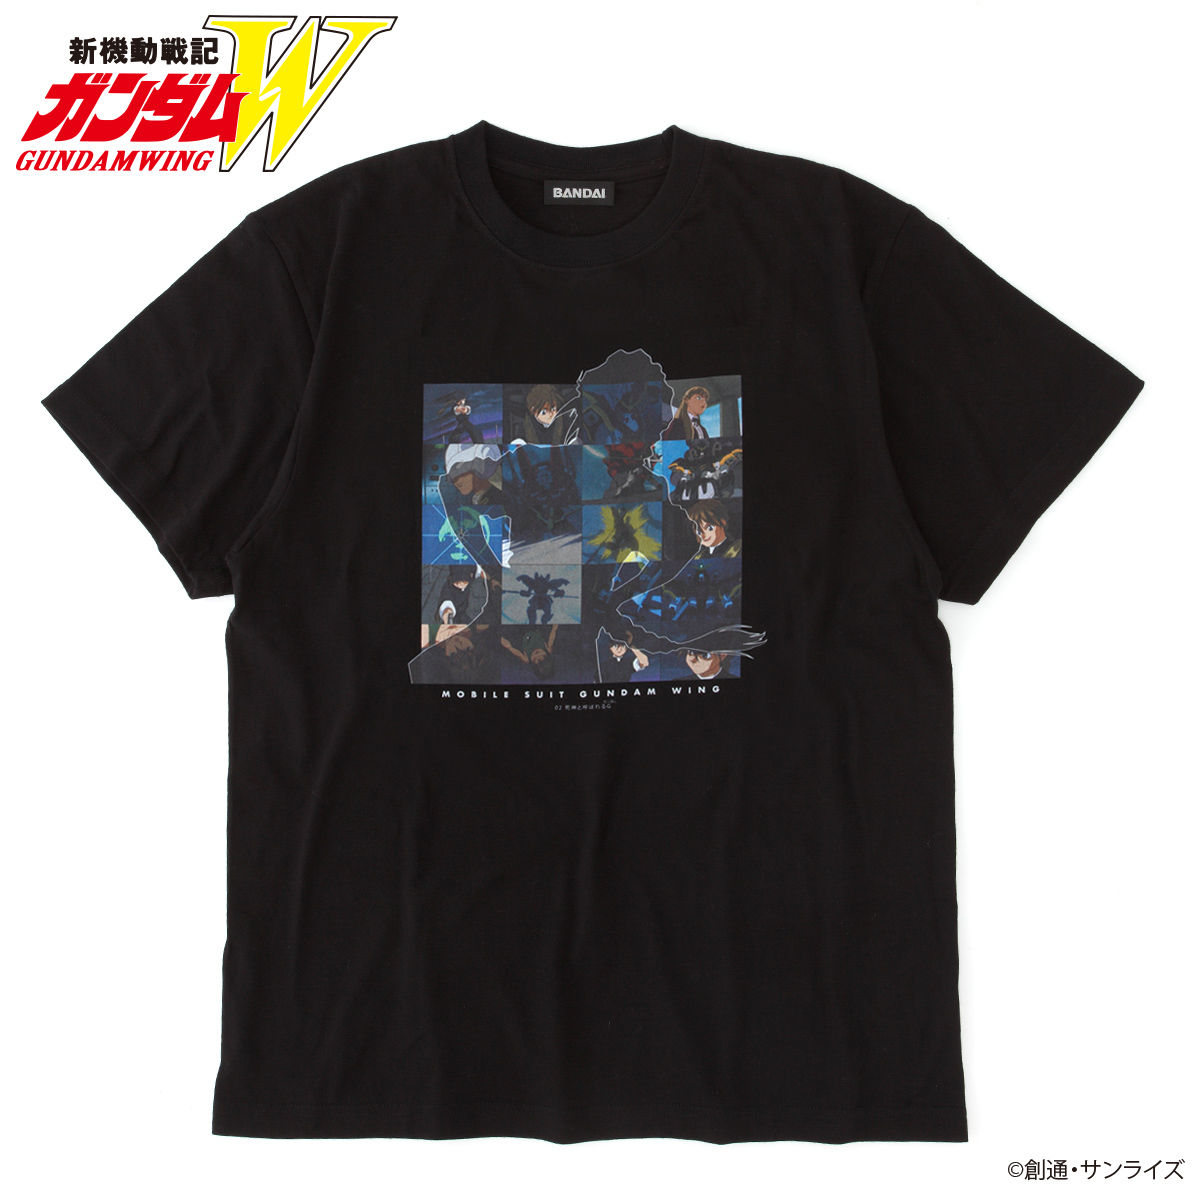 The Gundam Deathscythe T-shirt—Mobile Suit Gundam Wing